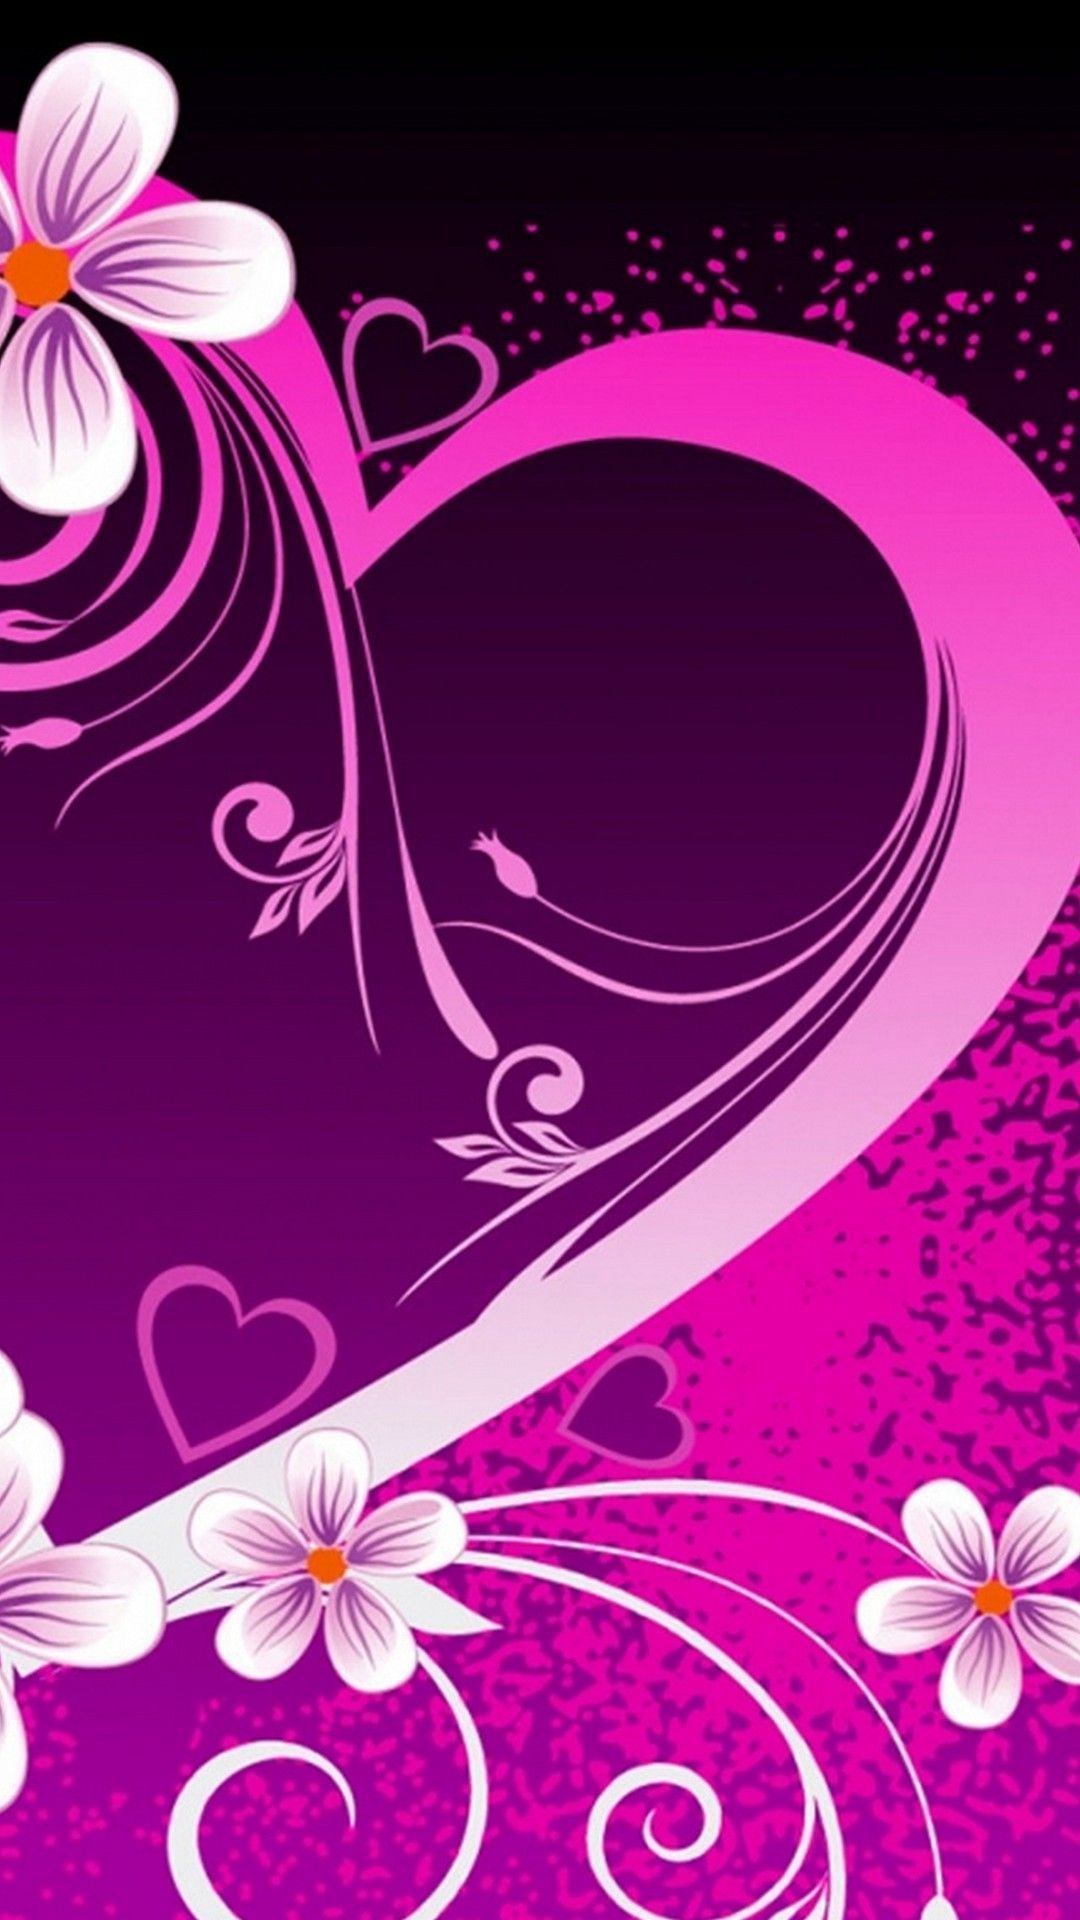 Download Cute Love Mobile Wallpapers Nokia E71 Iphone Wallpaper Cute Images Iphone Background Wallpaper